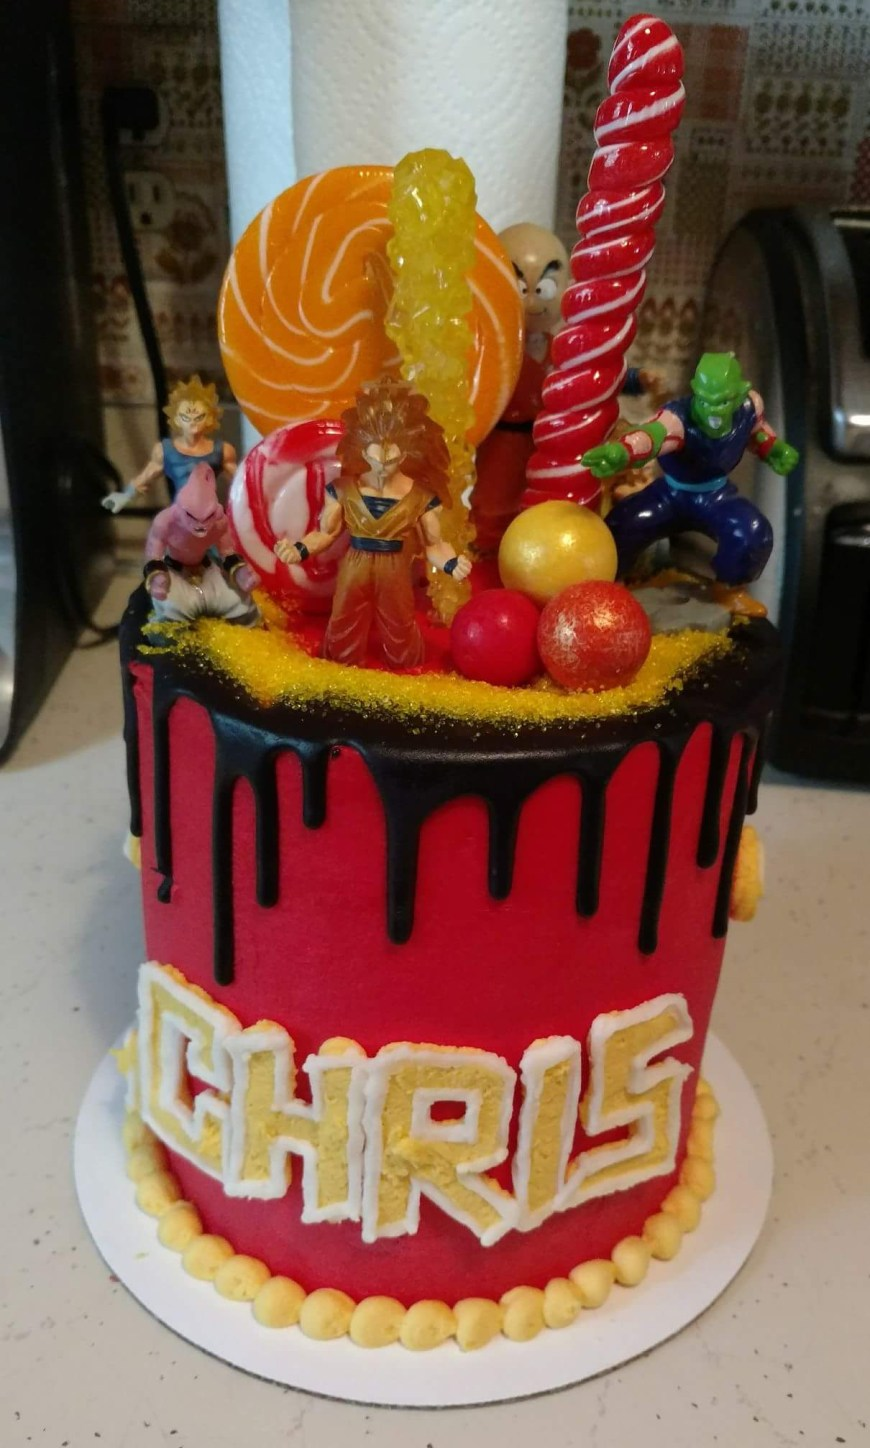 Dragon Ball Z Birthday Cake Awesome Dragon Ball Z Cake Imgur